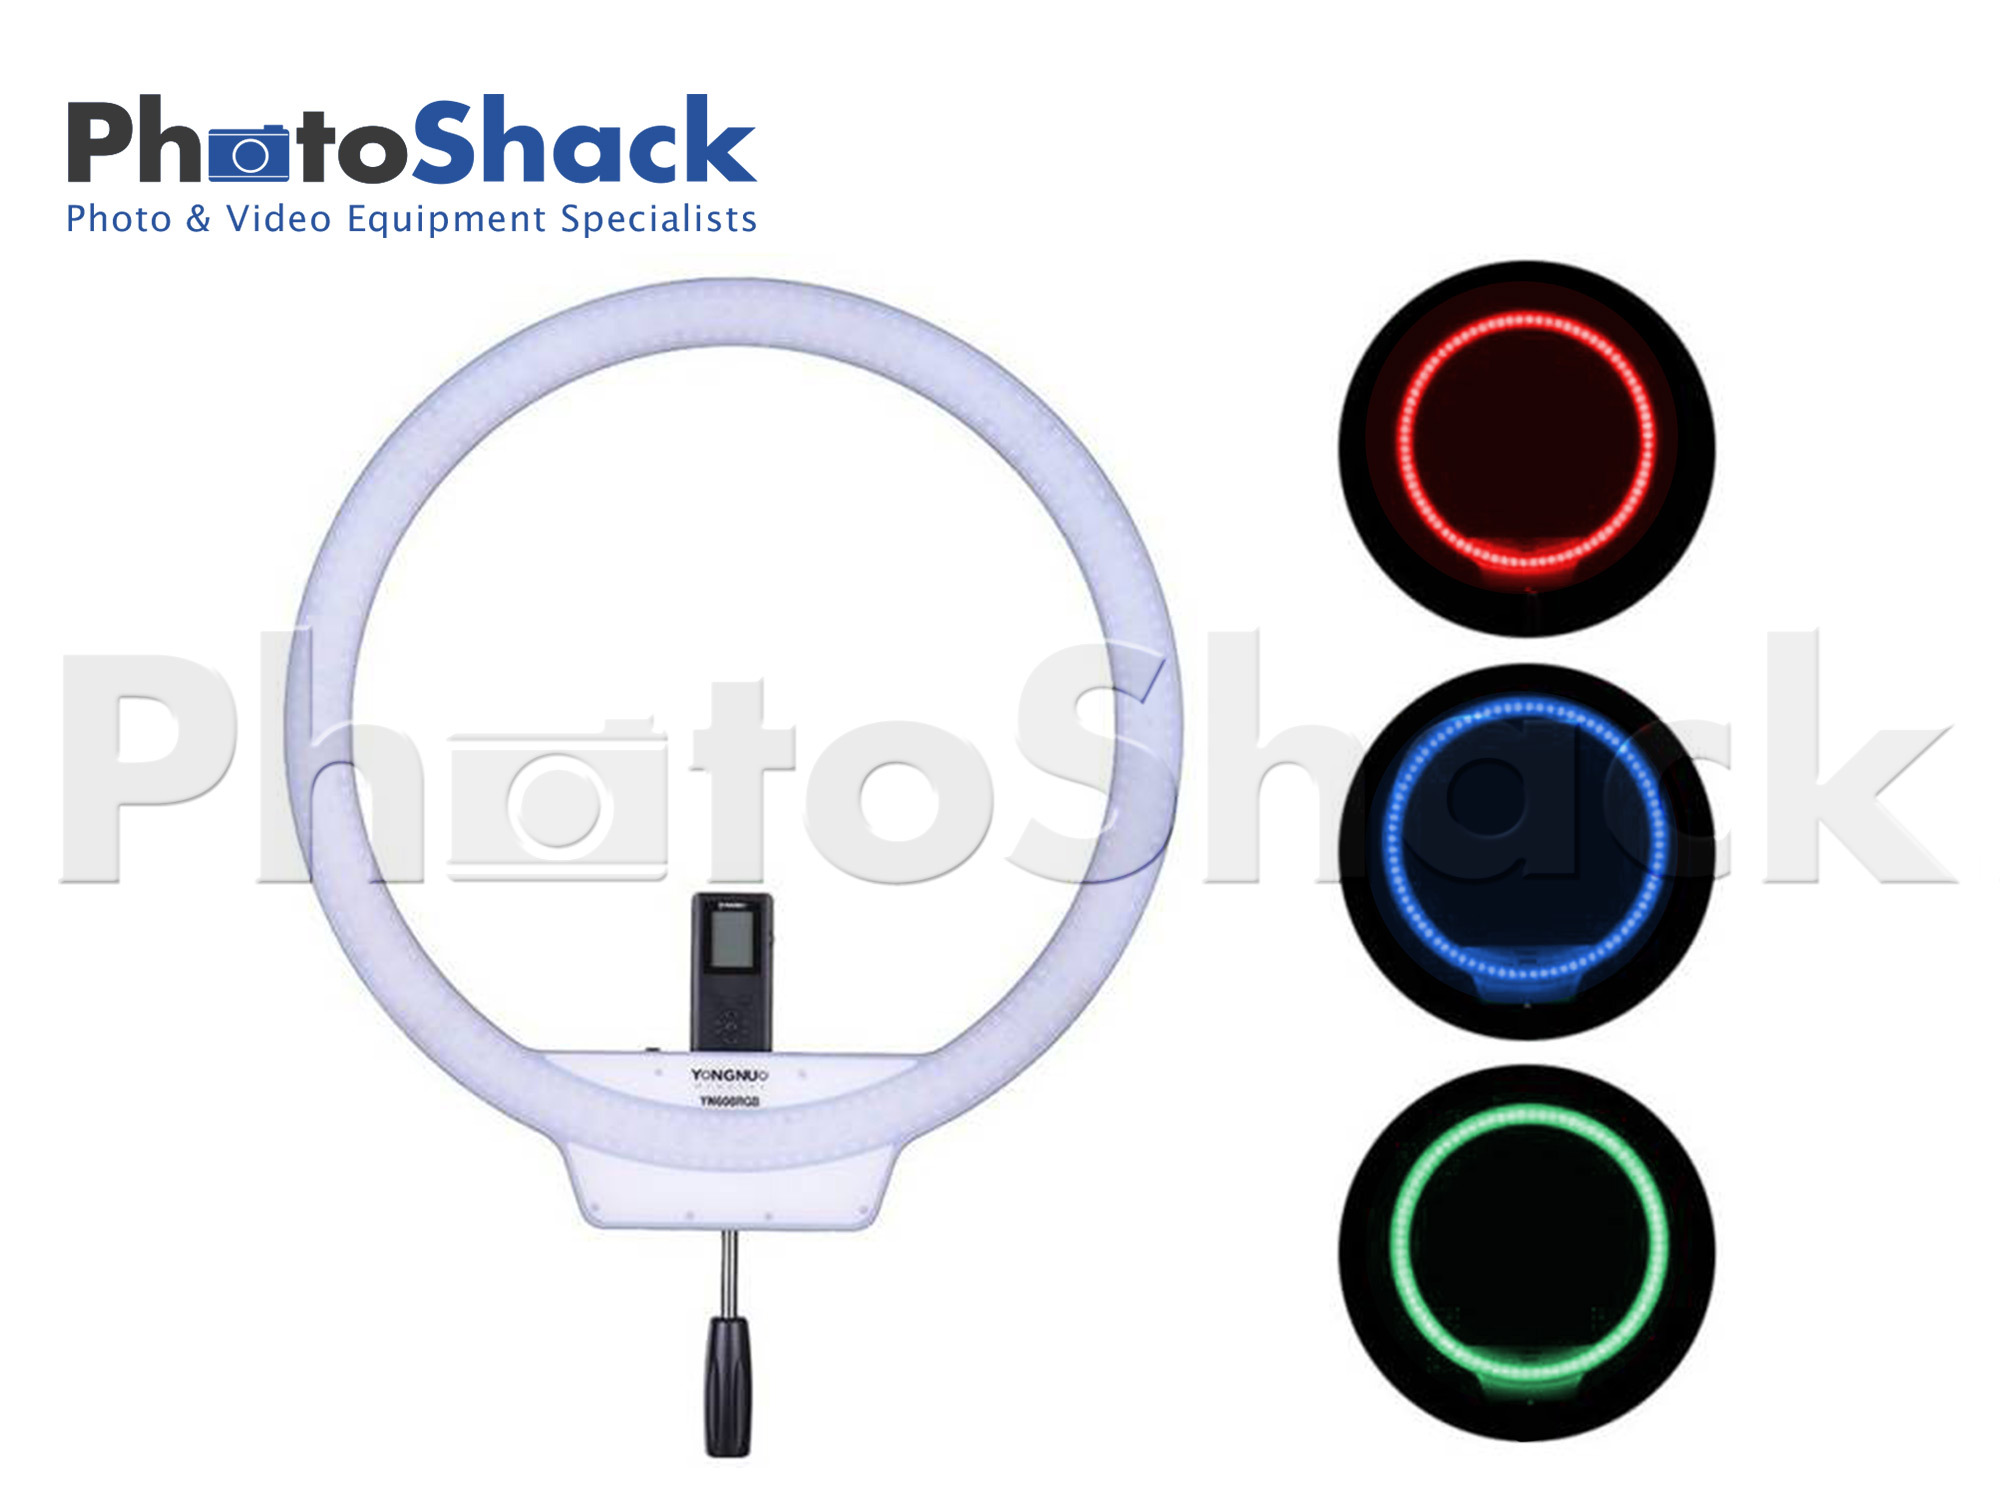 YN608 RGB Bi-Color LED Wireless Ring Light